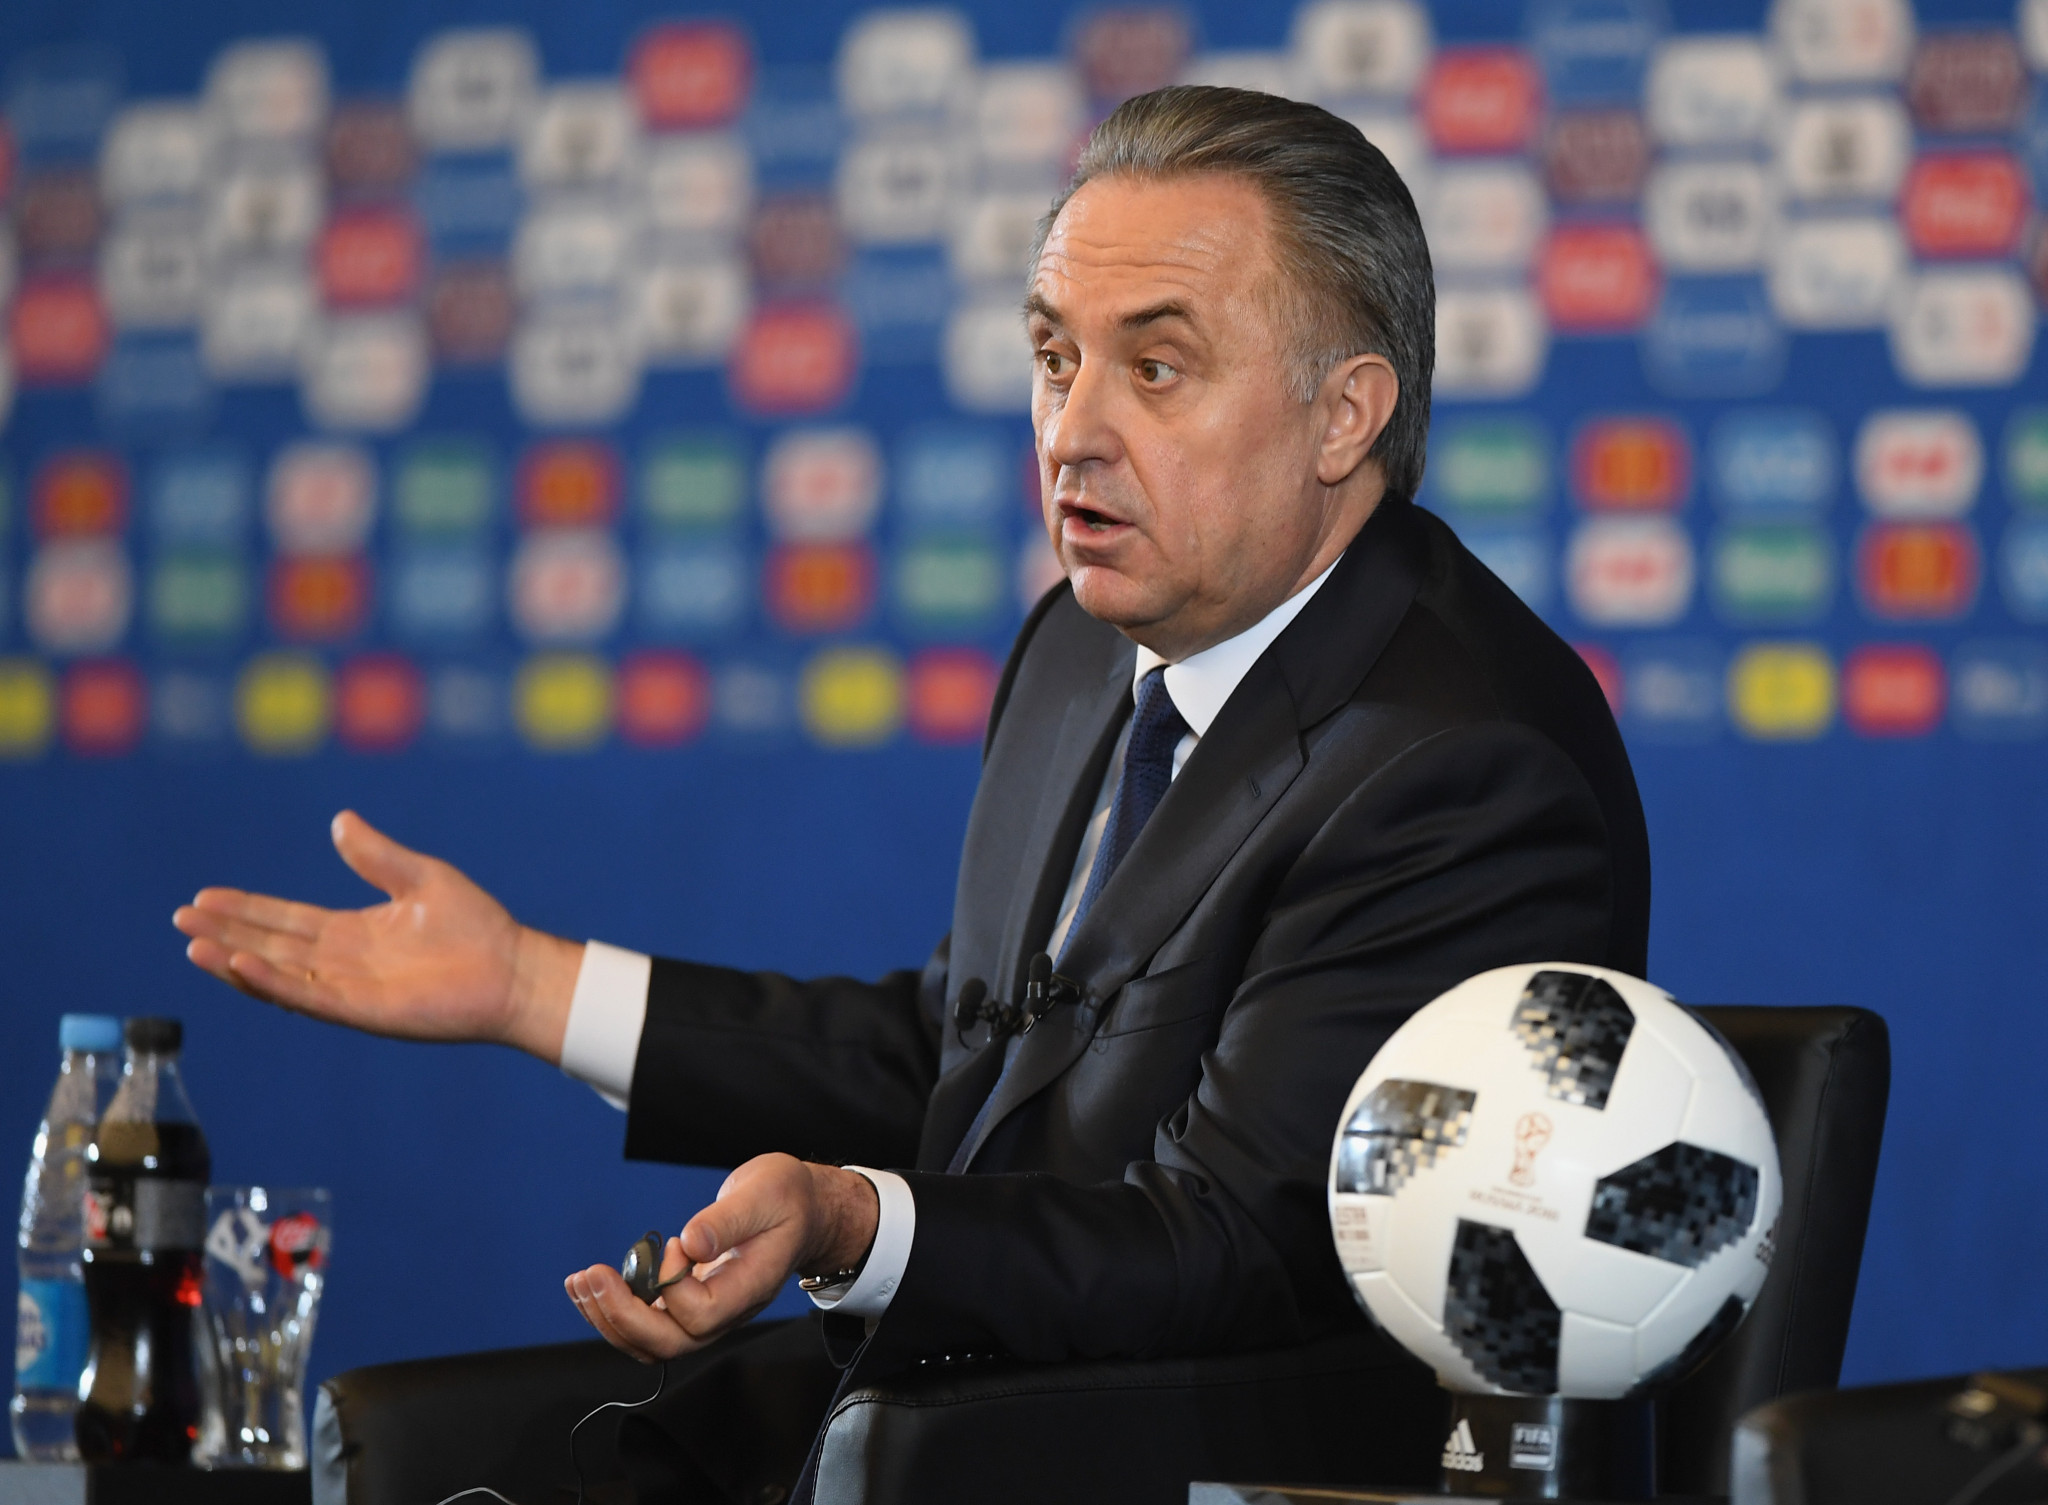 A decision to ban Russia's Deputy Prime Minister Vitaly Mutko from the Olympic Games for life for his involvement in the Sochi 2014 doping programme was described as wholly appropriate by Grigory Rodchenkov ©Getty Images